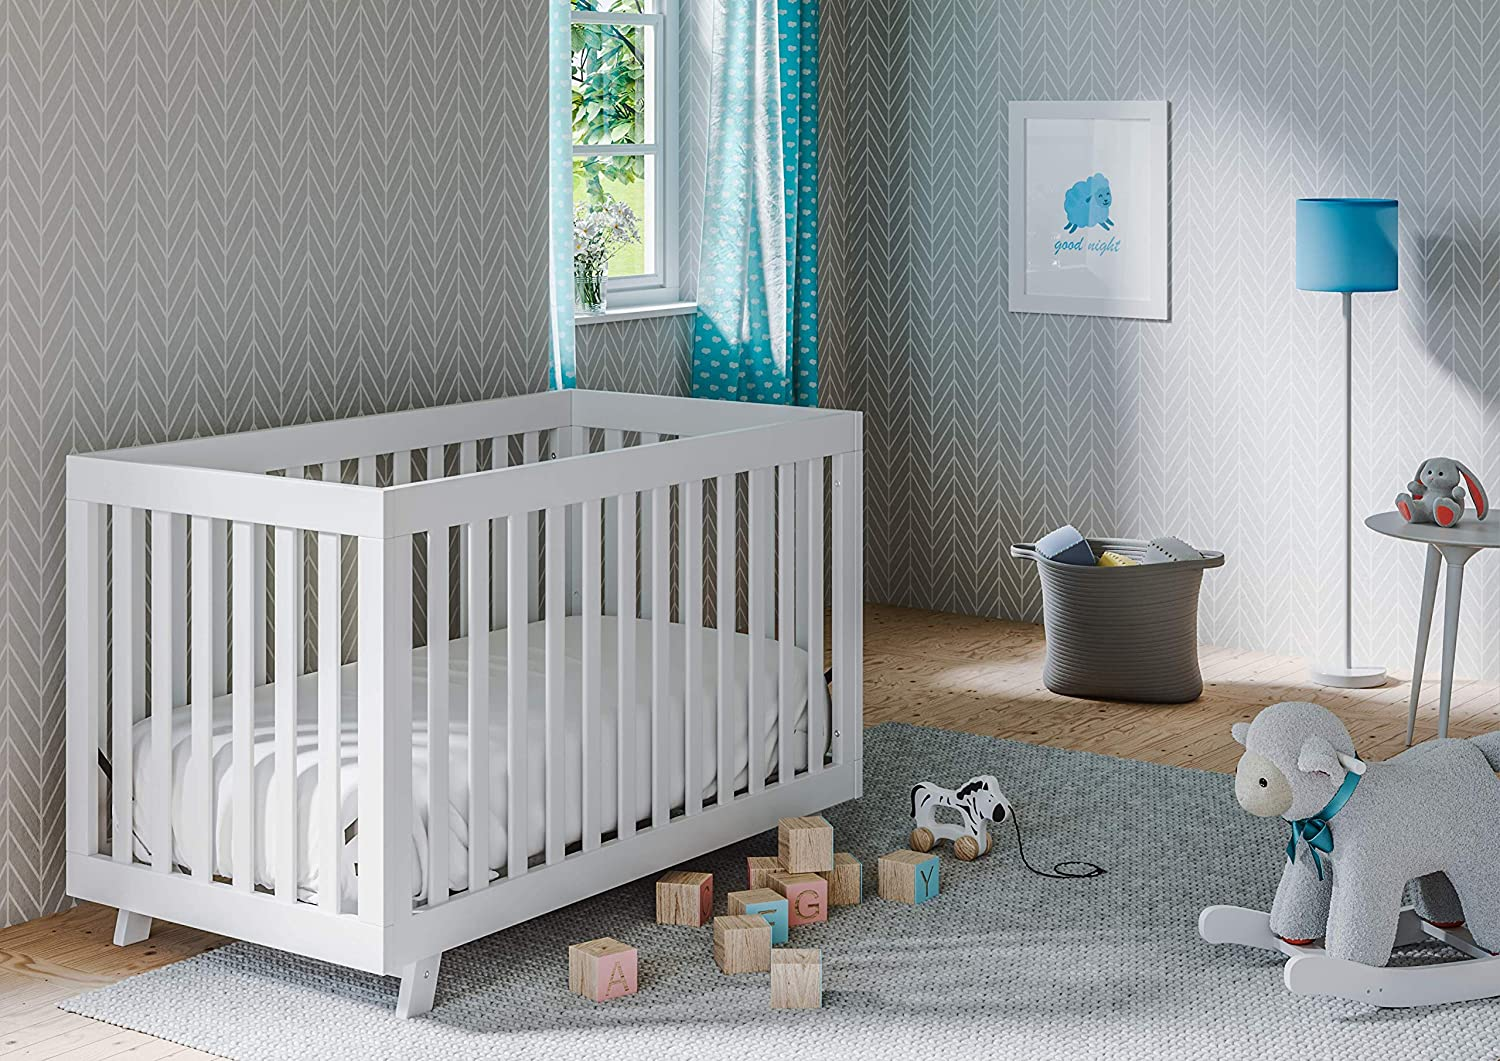 Storkcraft Beckett 3-in-1 Convertible Crib White Fixed Side Crib, Solid Pine and Wood Product Construction, Converts to Toddler Bed Day Bed or Full Bed Mattress Not Included